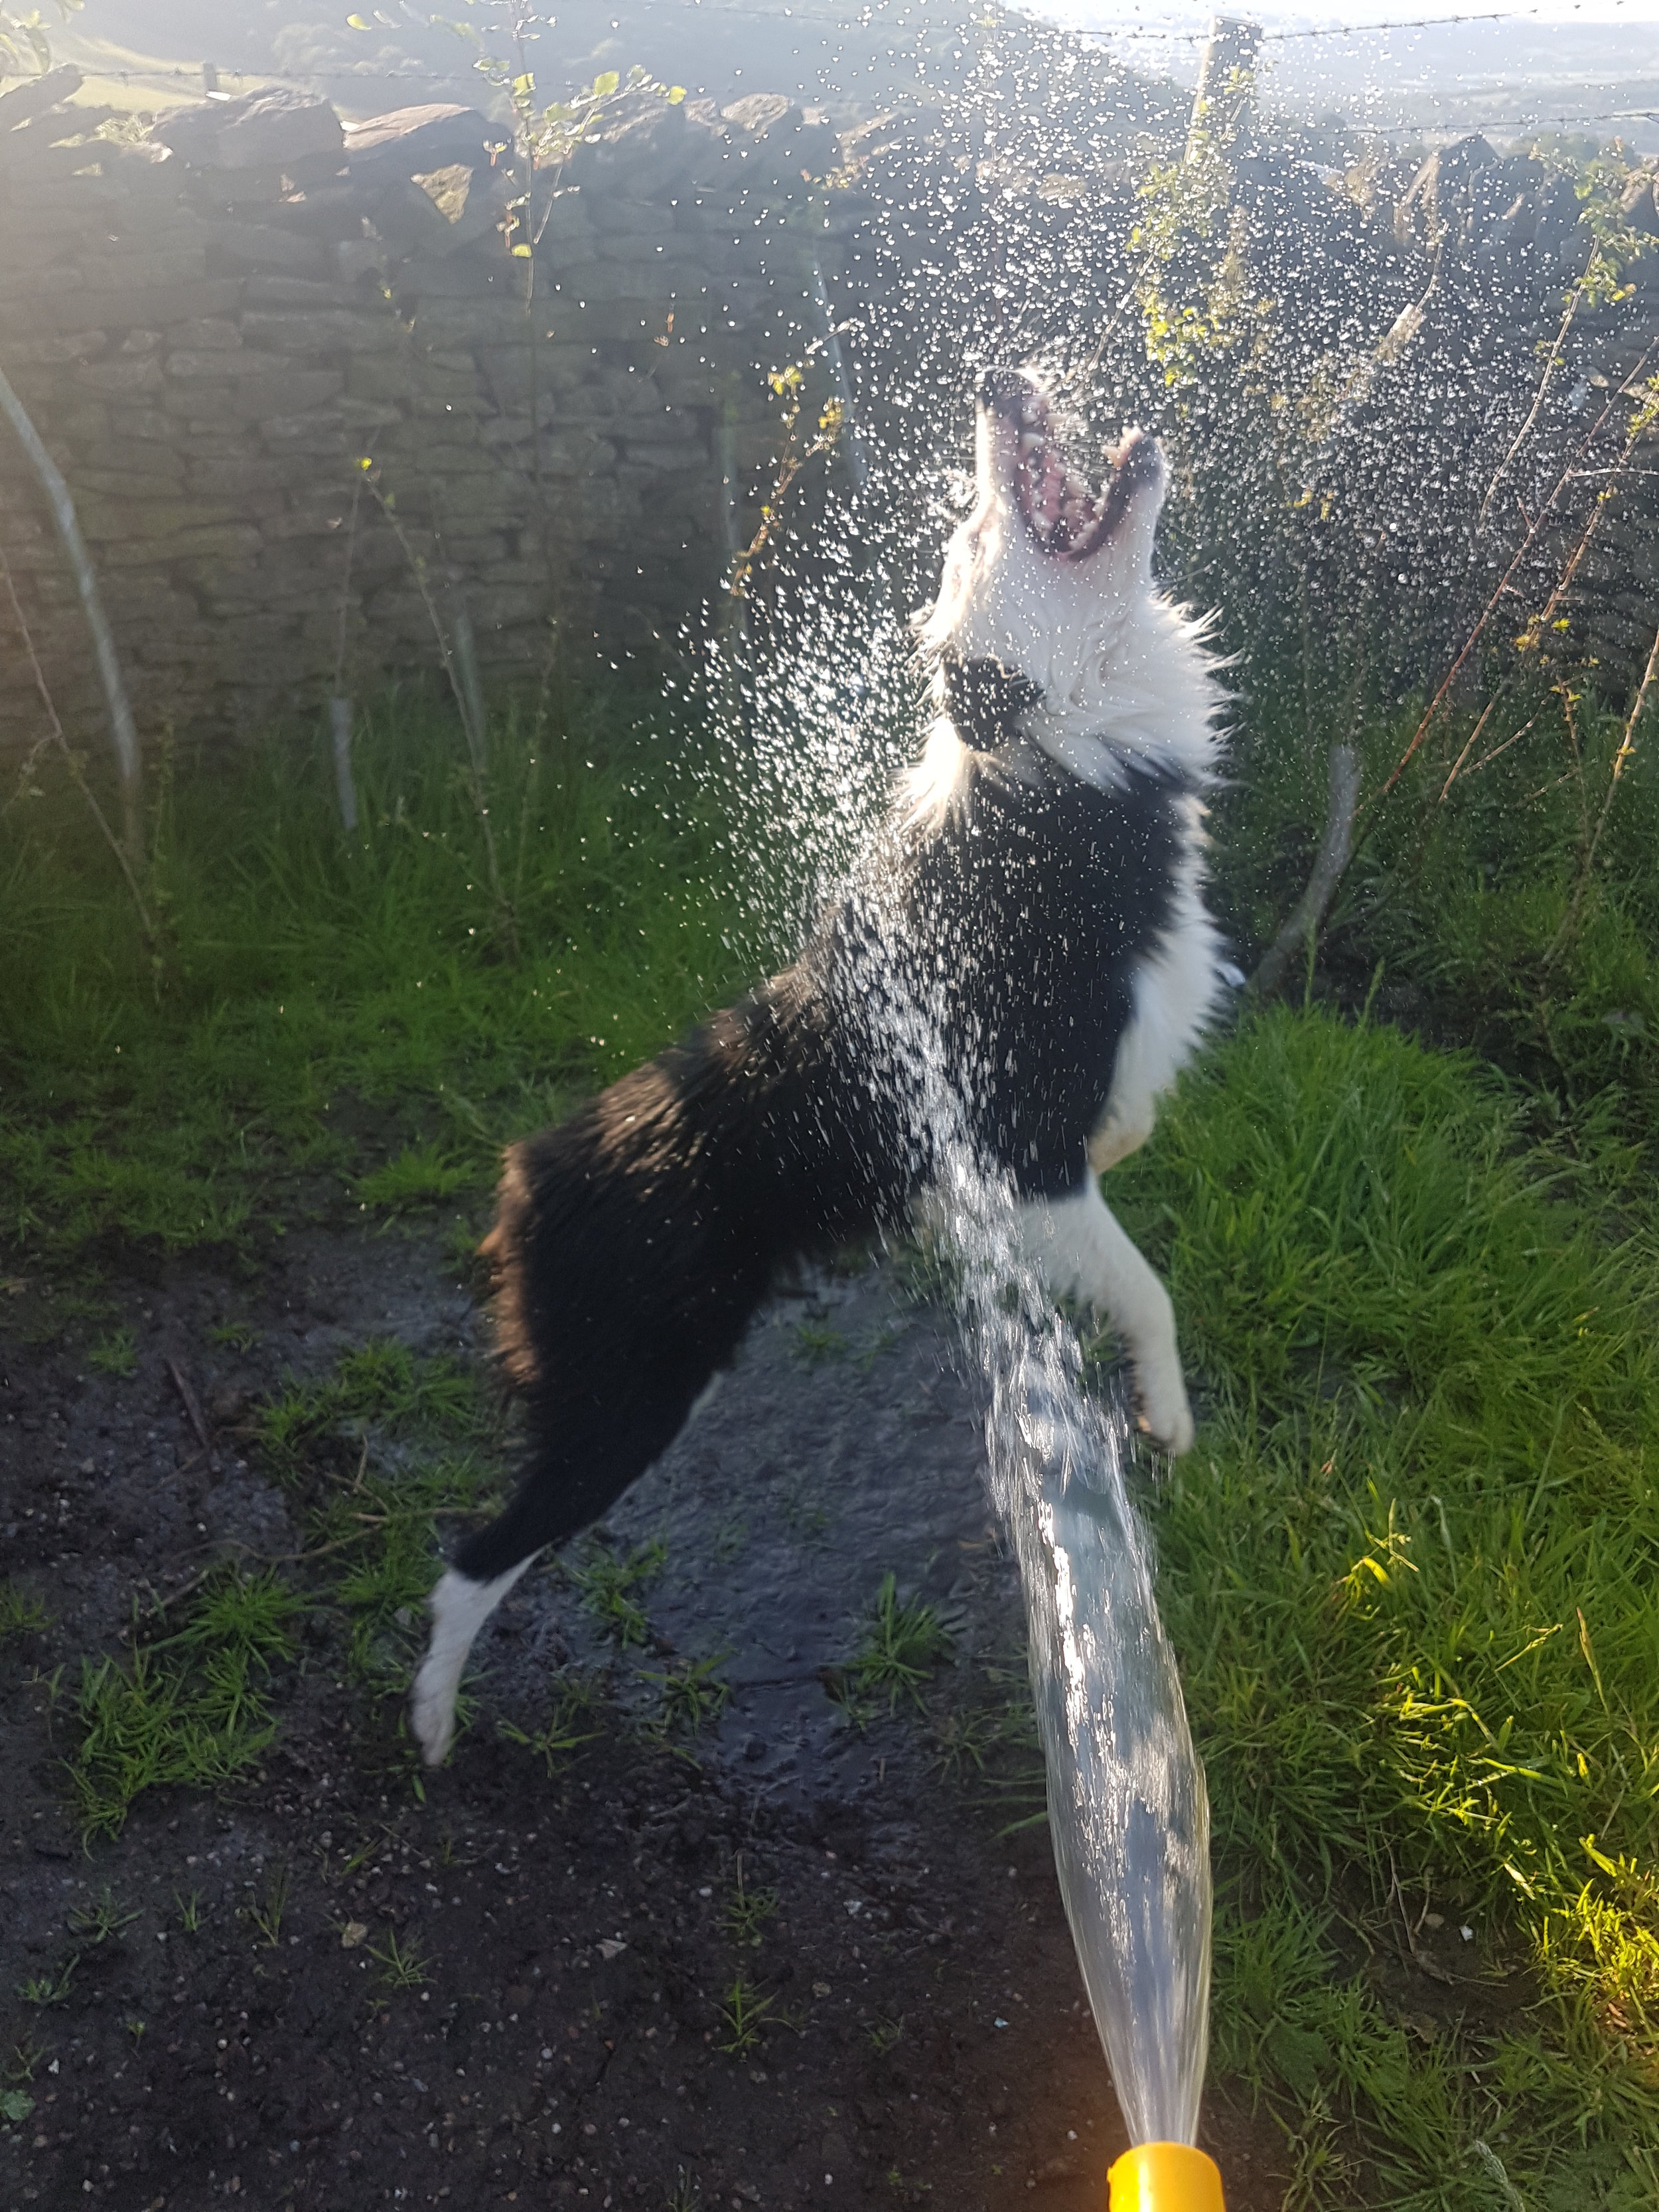 Mishka the Border Collie is a Good Happy Dog. Here he is catching water from the hosepipe